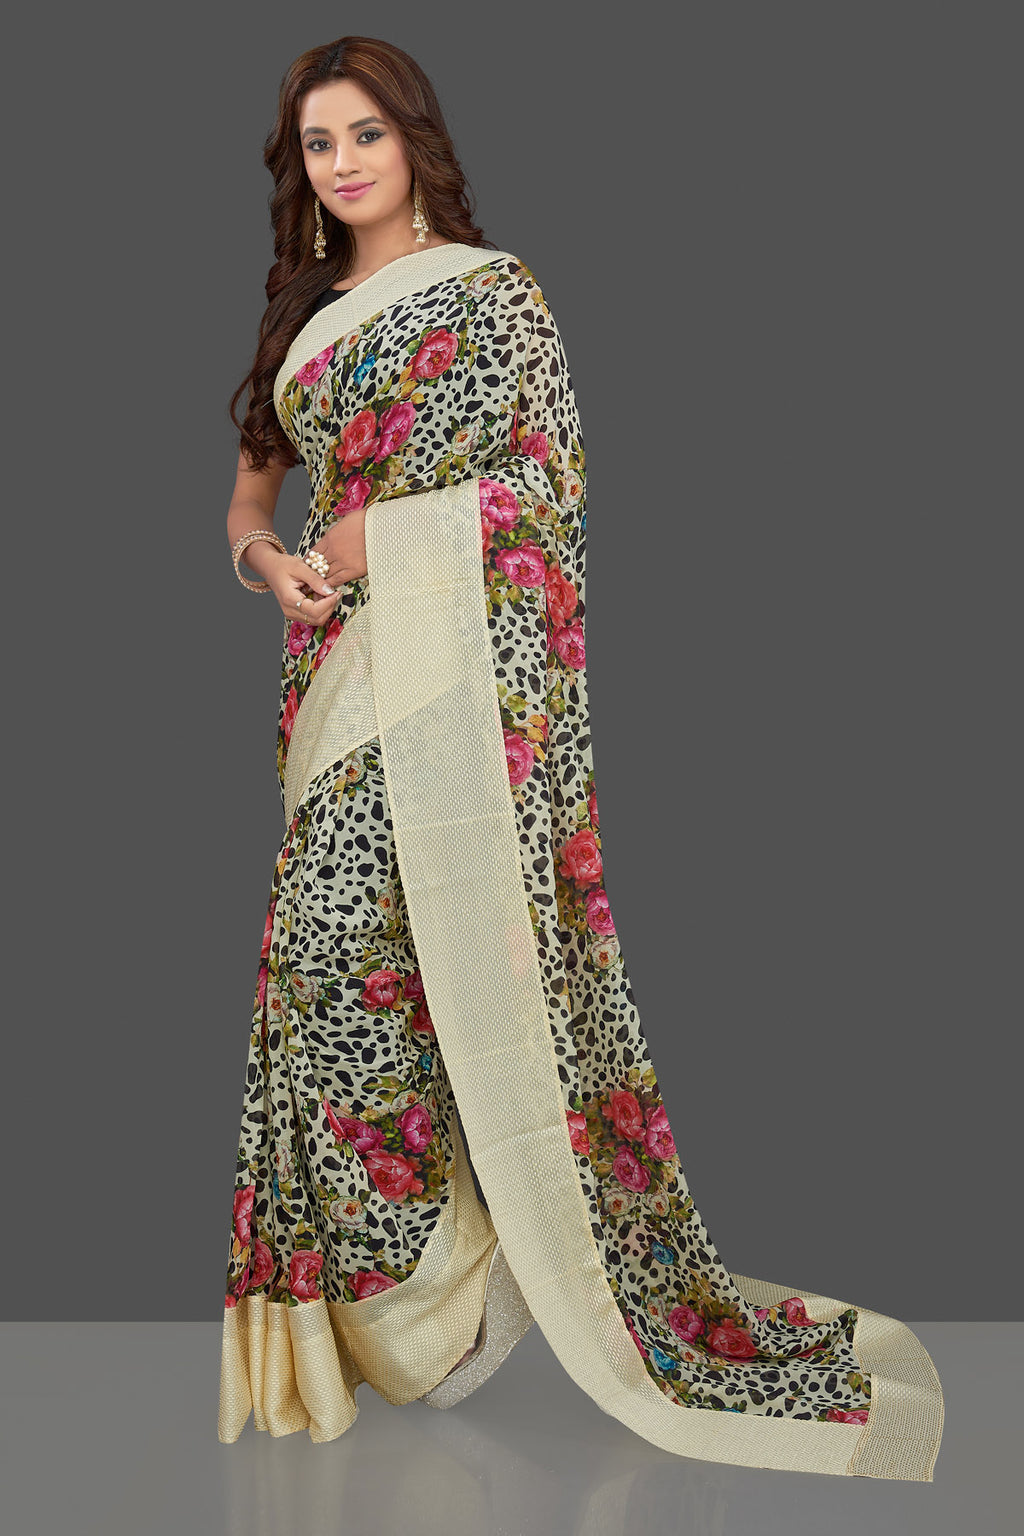 Buy stylish cream floral and leopard print georgette saree online in USA. Make you presence felt with your Indian style on special occasions in beautiful designer sarees, crepe silk sarees, georgette saris, printed sarees from Pure Elegance Indian fashion store in USA.-full view